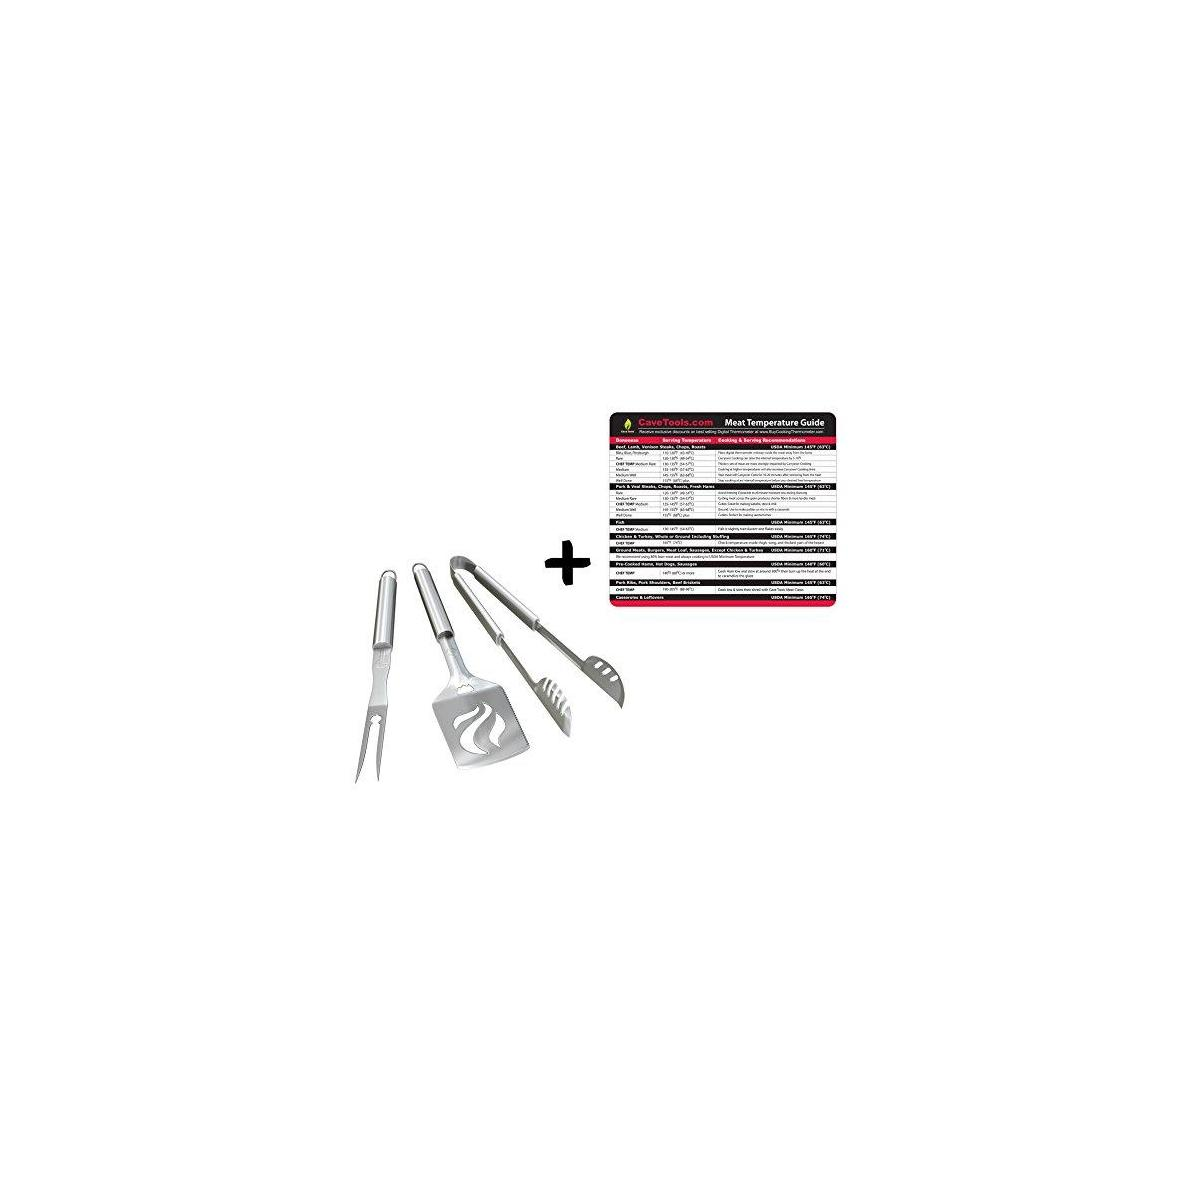 Temp Guide + BBQ Grill Tools Set - HEAVY DUTY 20% THICKER STAINLESS STEEL - Professional Grade Barbecue Accessories - 3 Piece Utensils Kit with Spatula Tong & Fork - Unique Birthday Gift Idea For Dad